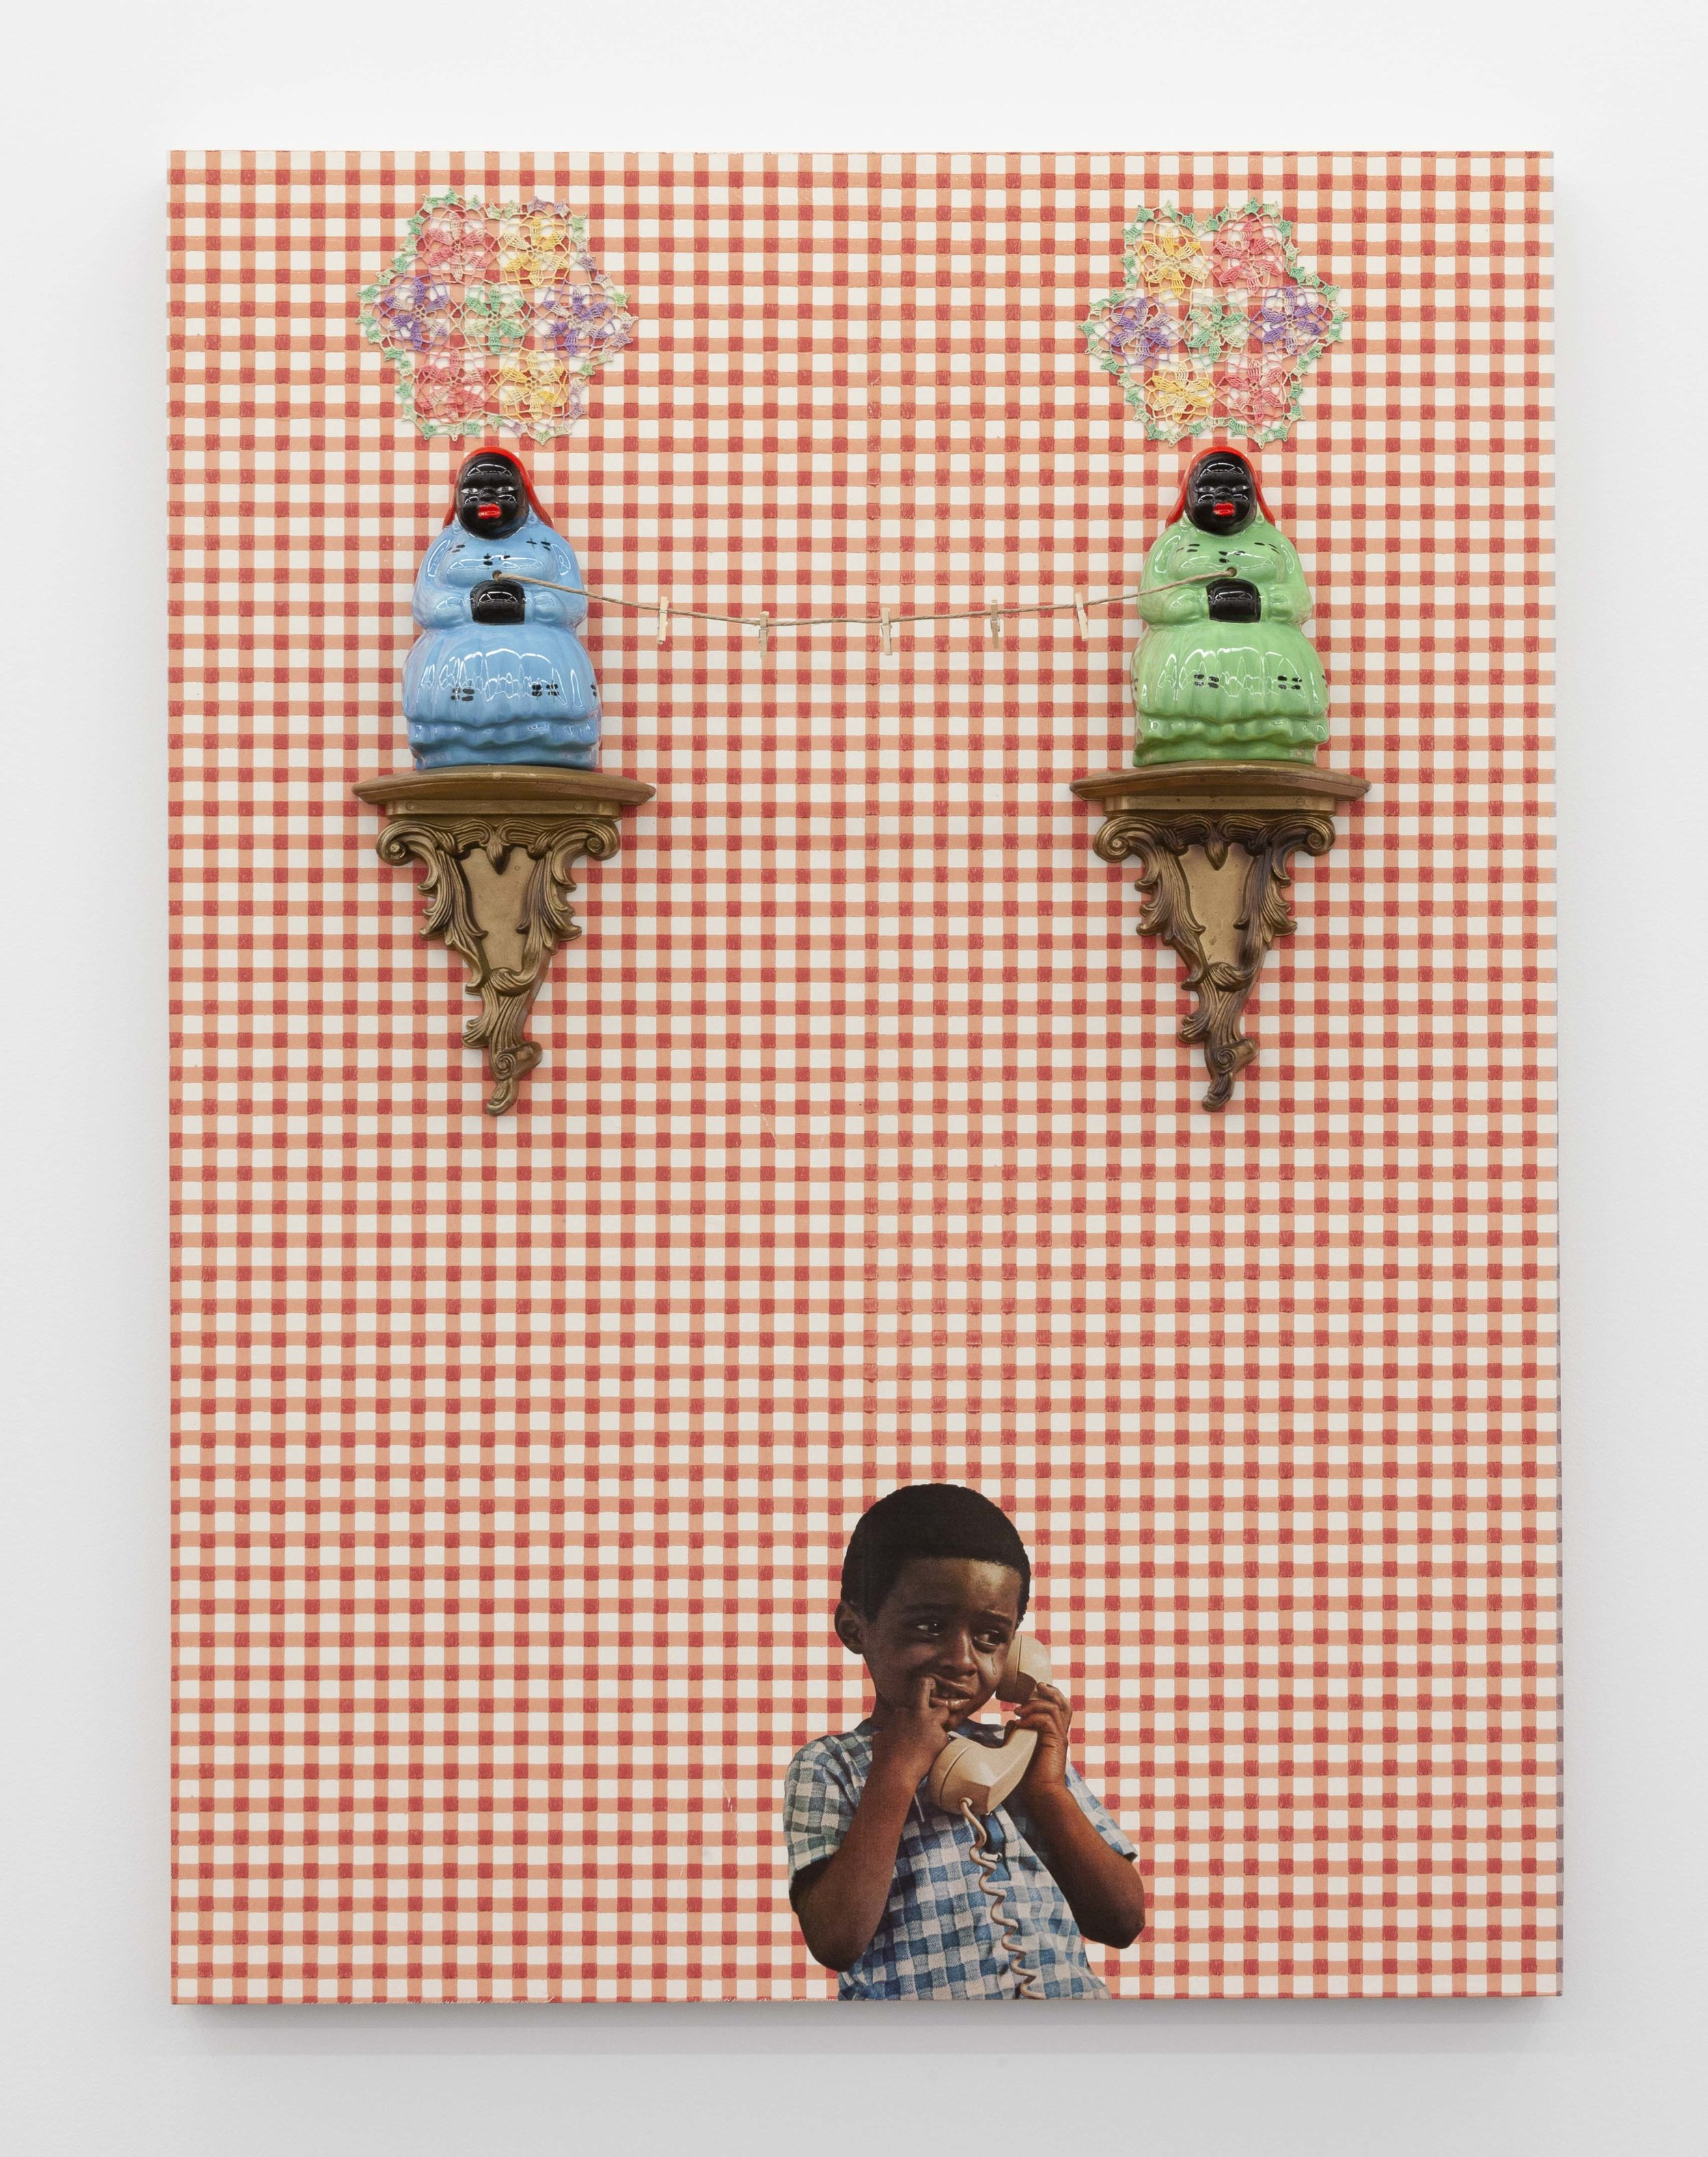 Mercy Mercy Me,  2019. Vintage wallpaper, vintage magazine cutouts, doilies, wood shelves, porcelain figurines, twine, clothespins, clear acrylic, on panel. 40 x 30 x 6 in. (101.6 x 76.2 x 15.2 cm). Photo by RCH Photography. Courtesy the artist and Monique Meloche Gallery. Chicago.